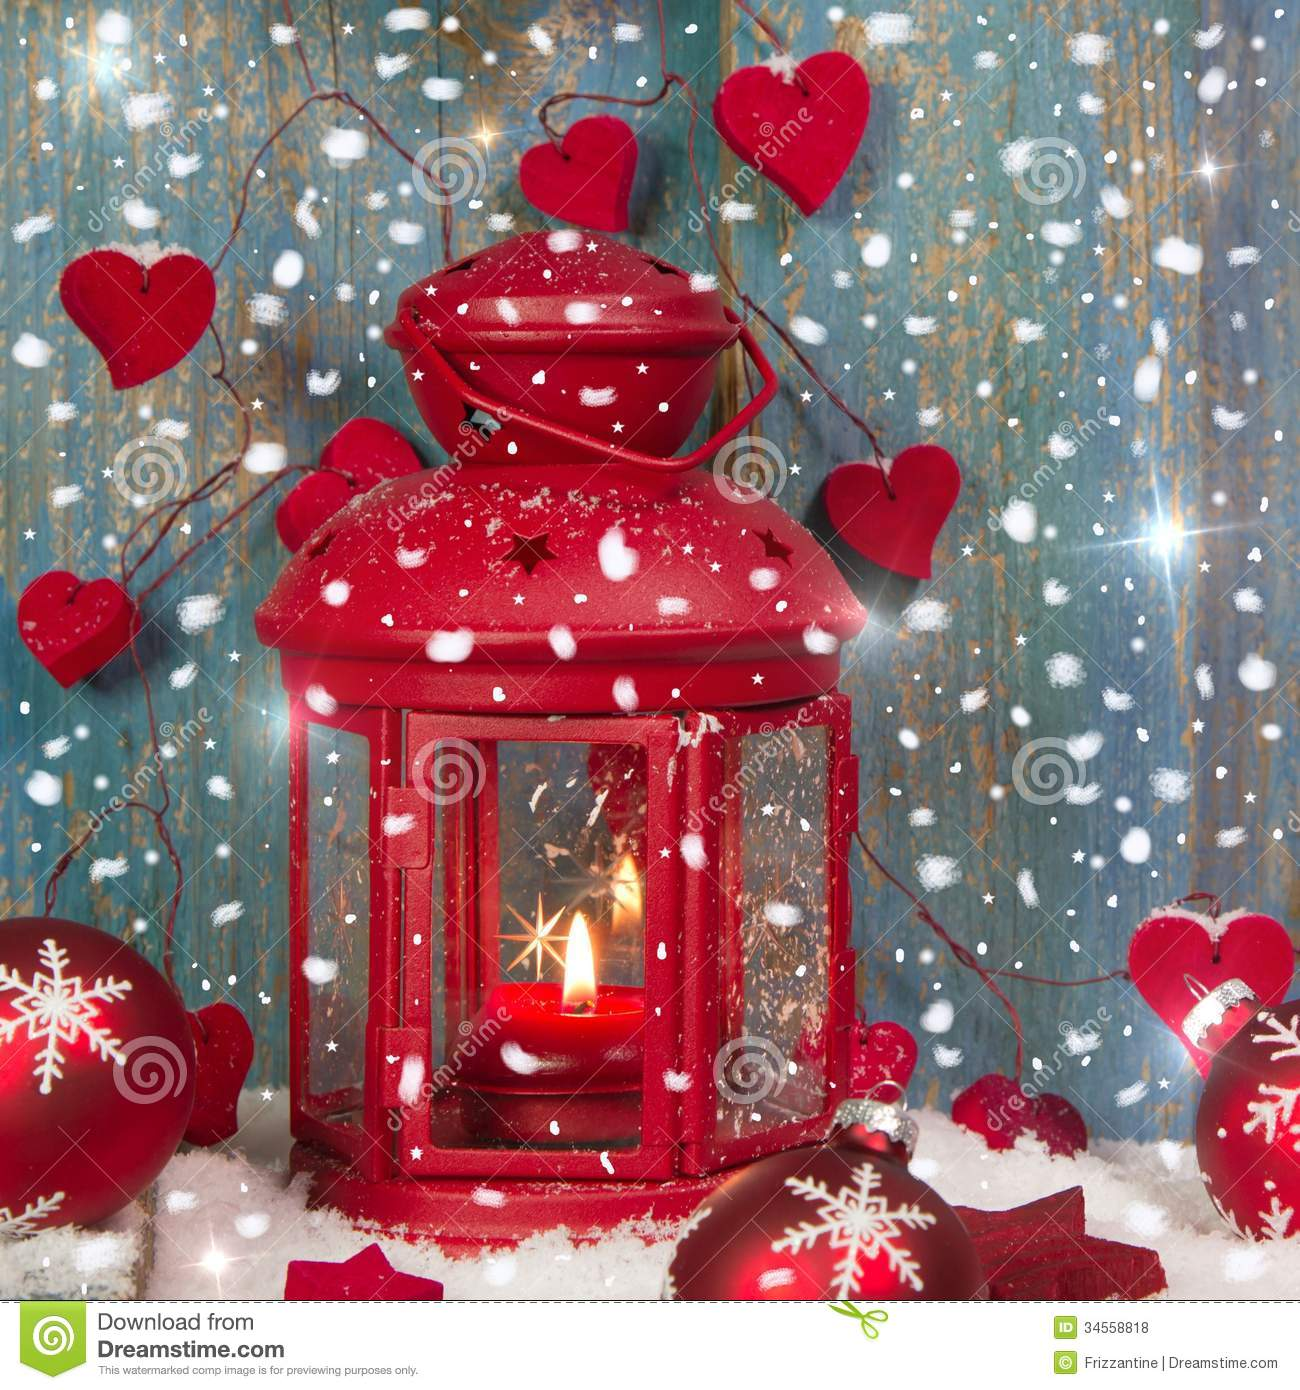 Red Lantern With Candlelights And Shnowflakes Christmas